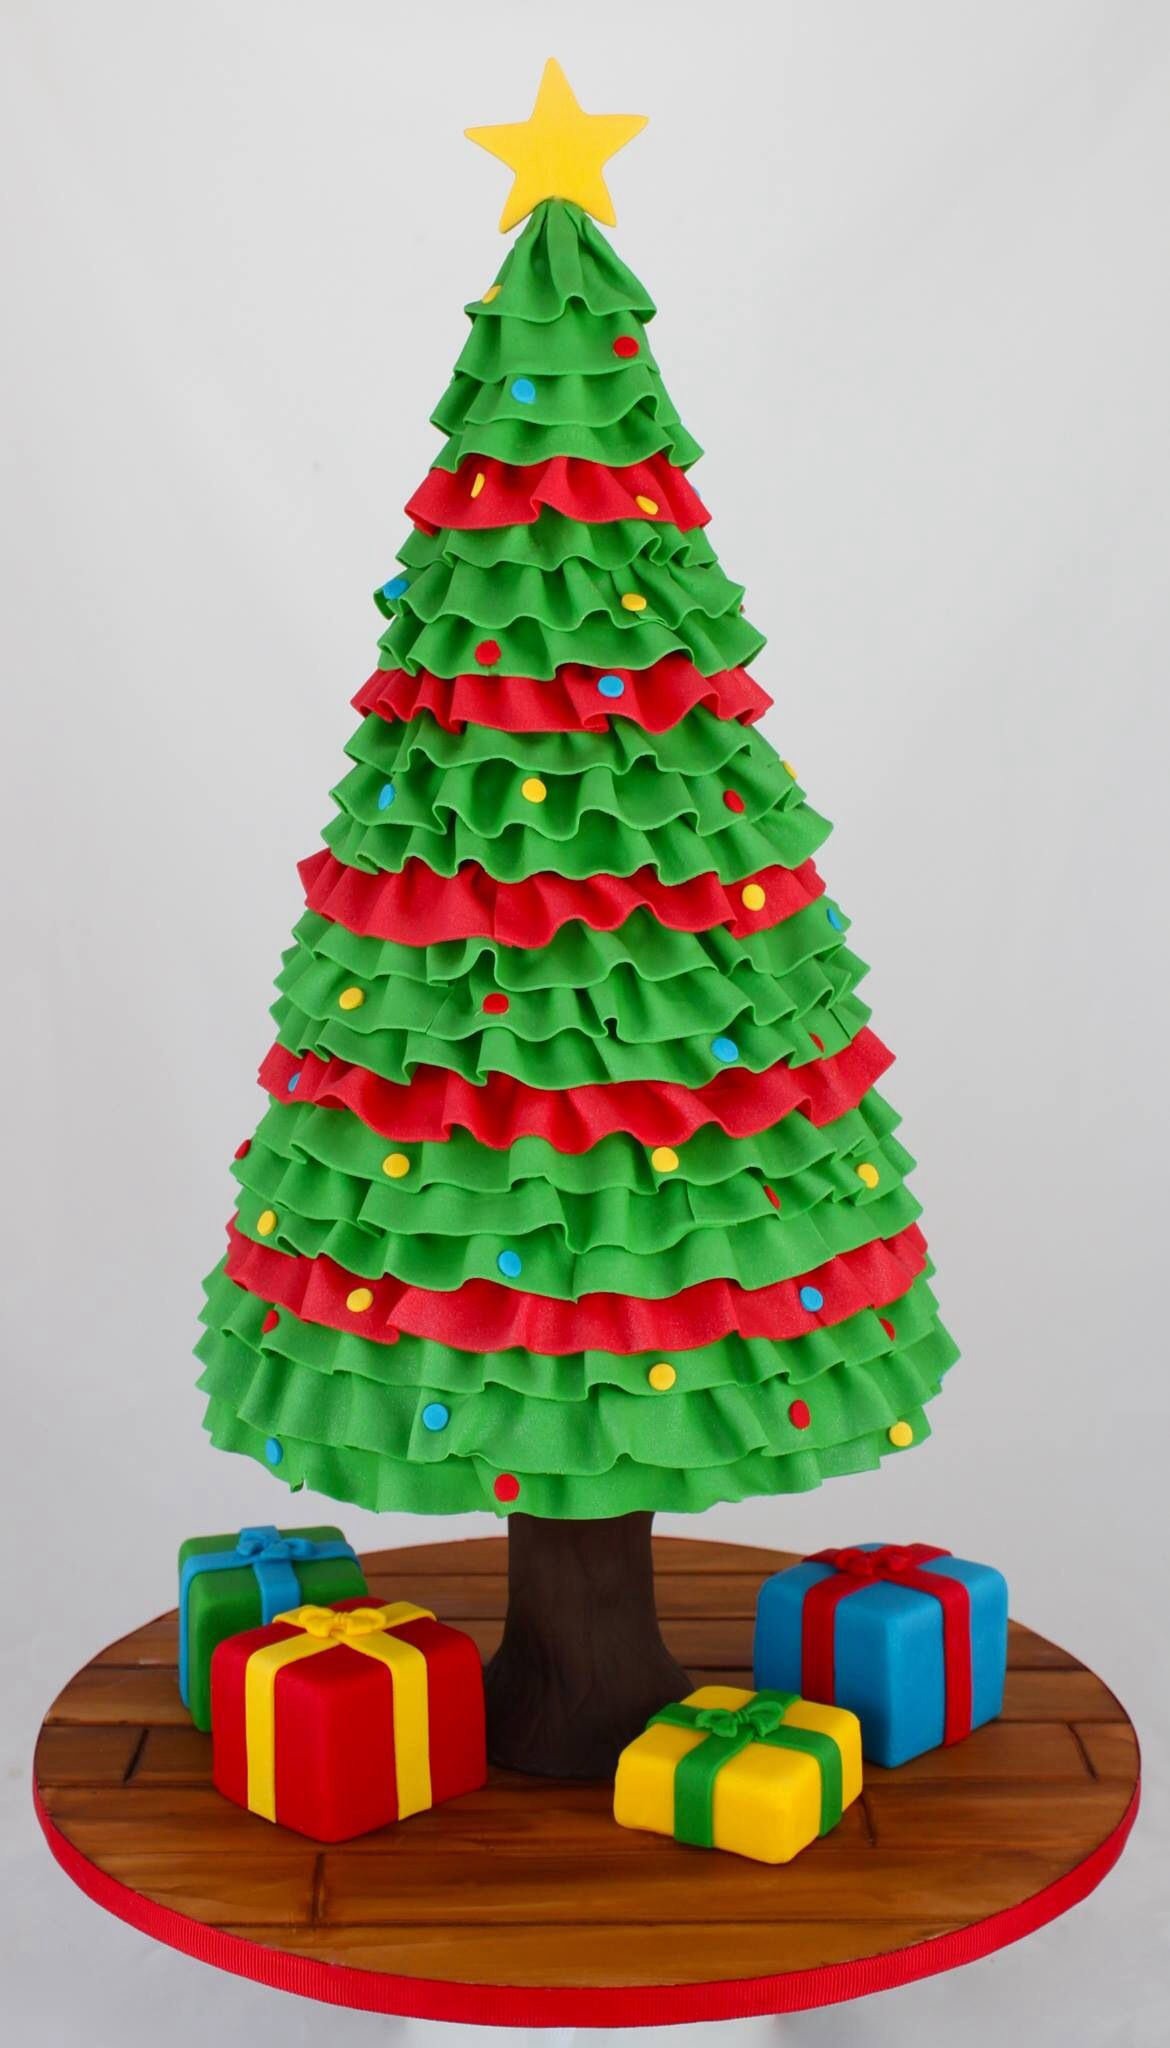 Amazing Christmas Tree Cake Modelage Pinterest